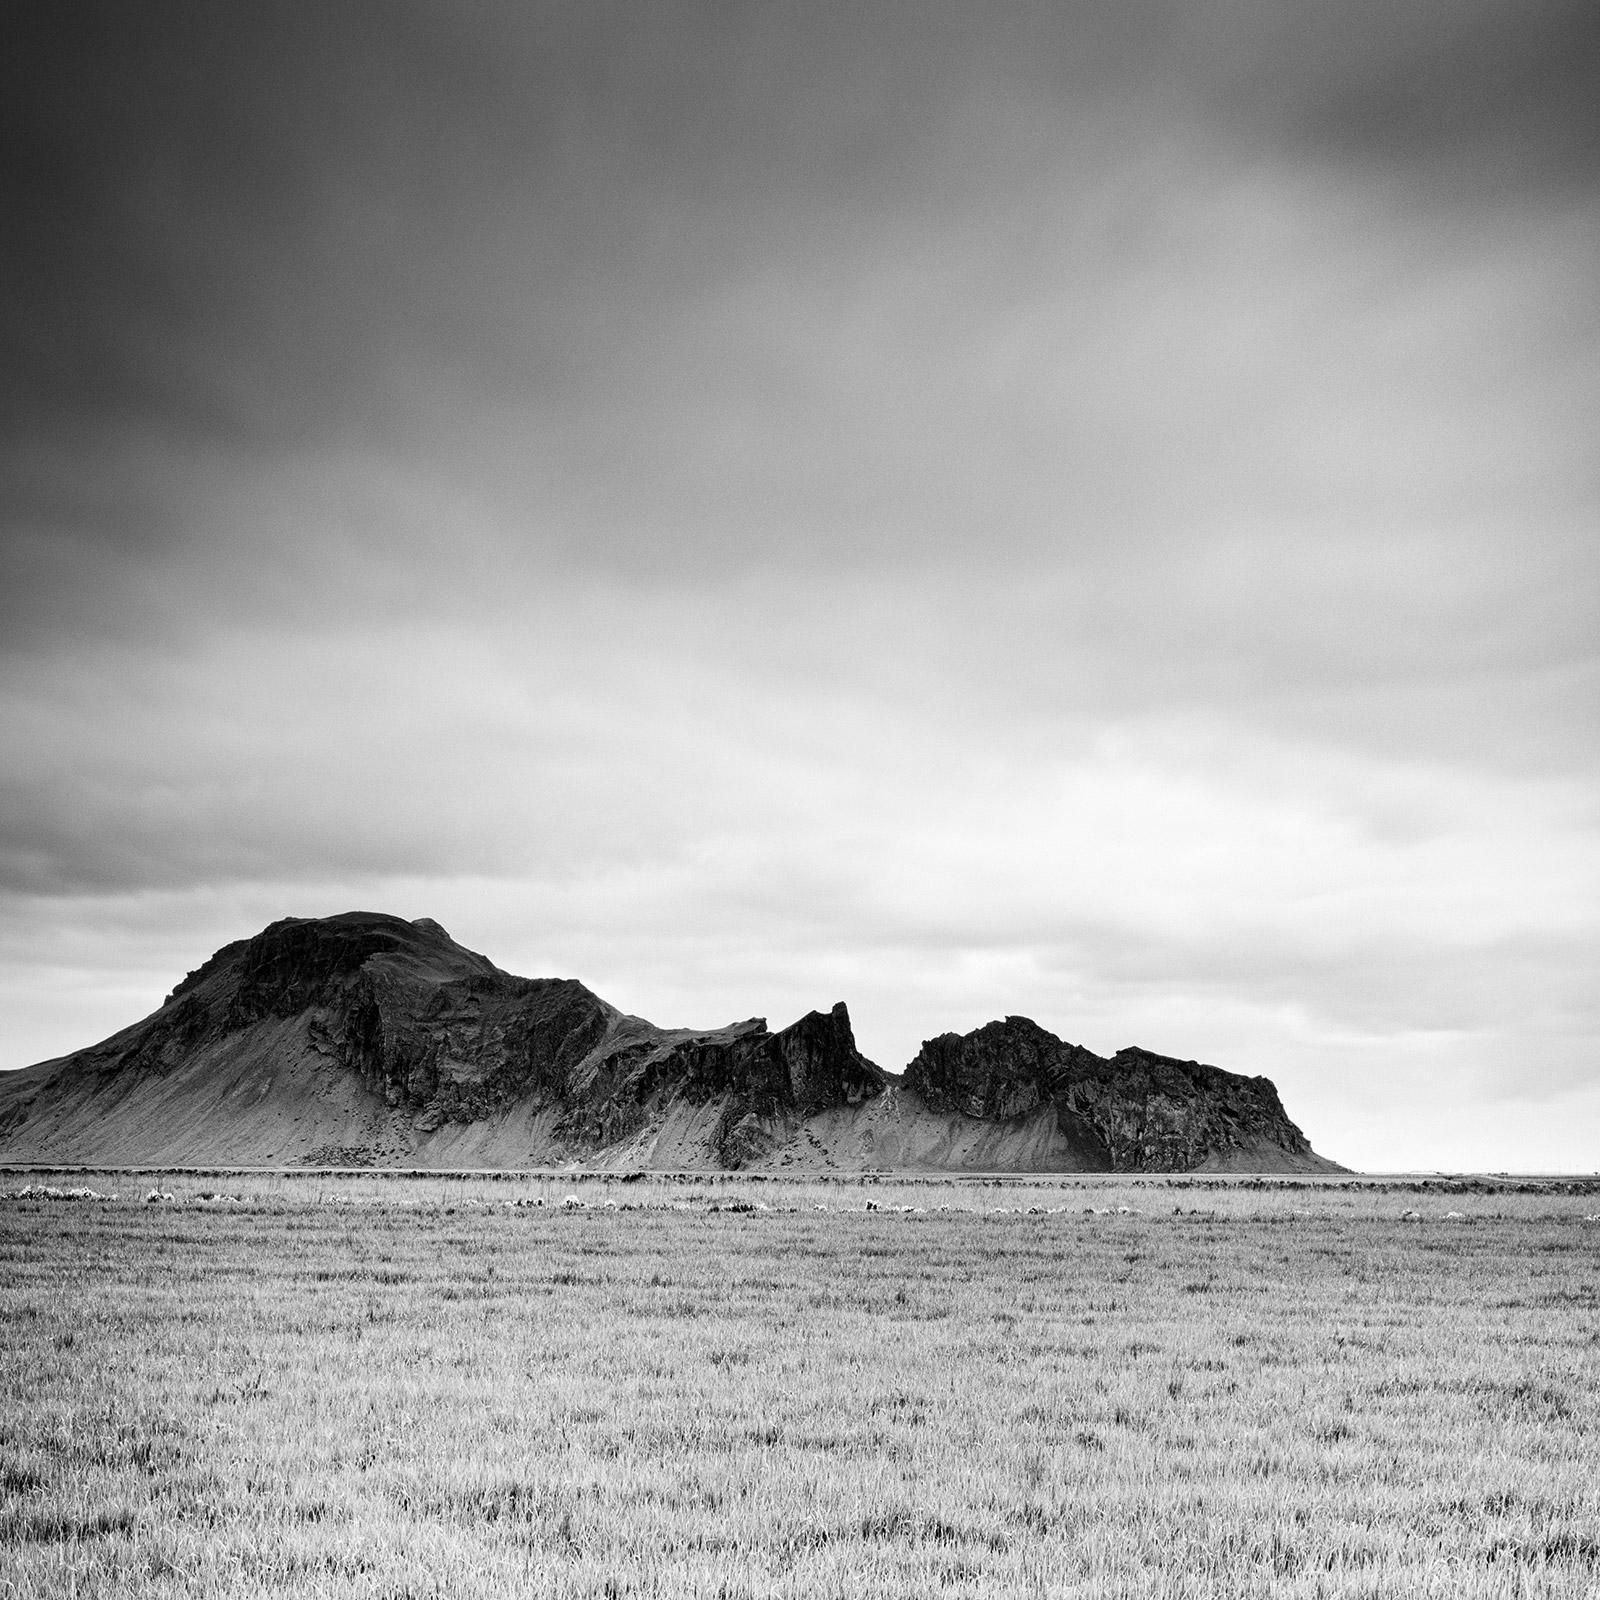 Mountain Meadow, Iceland, contemporary black and white photography, landscapes